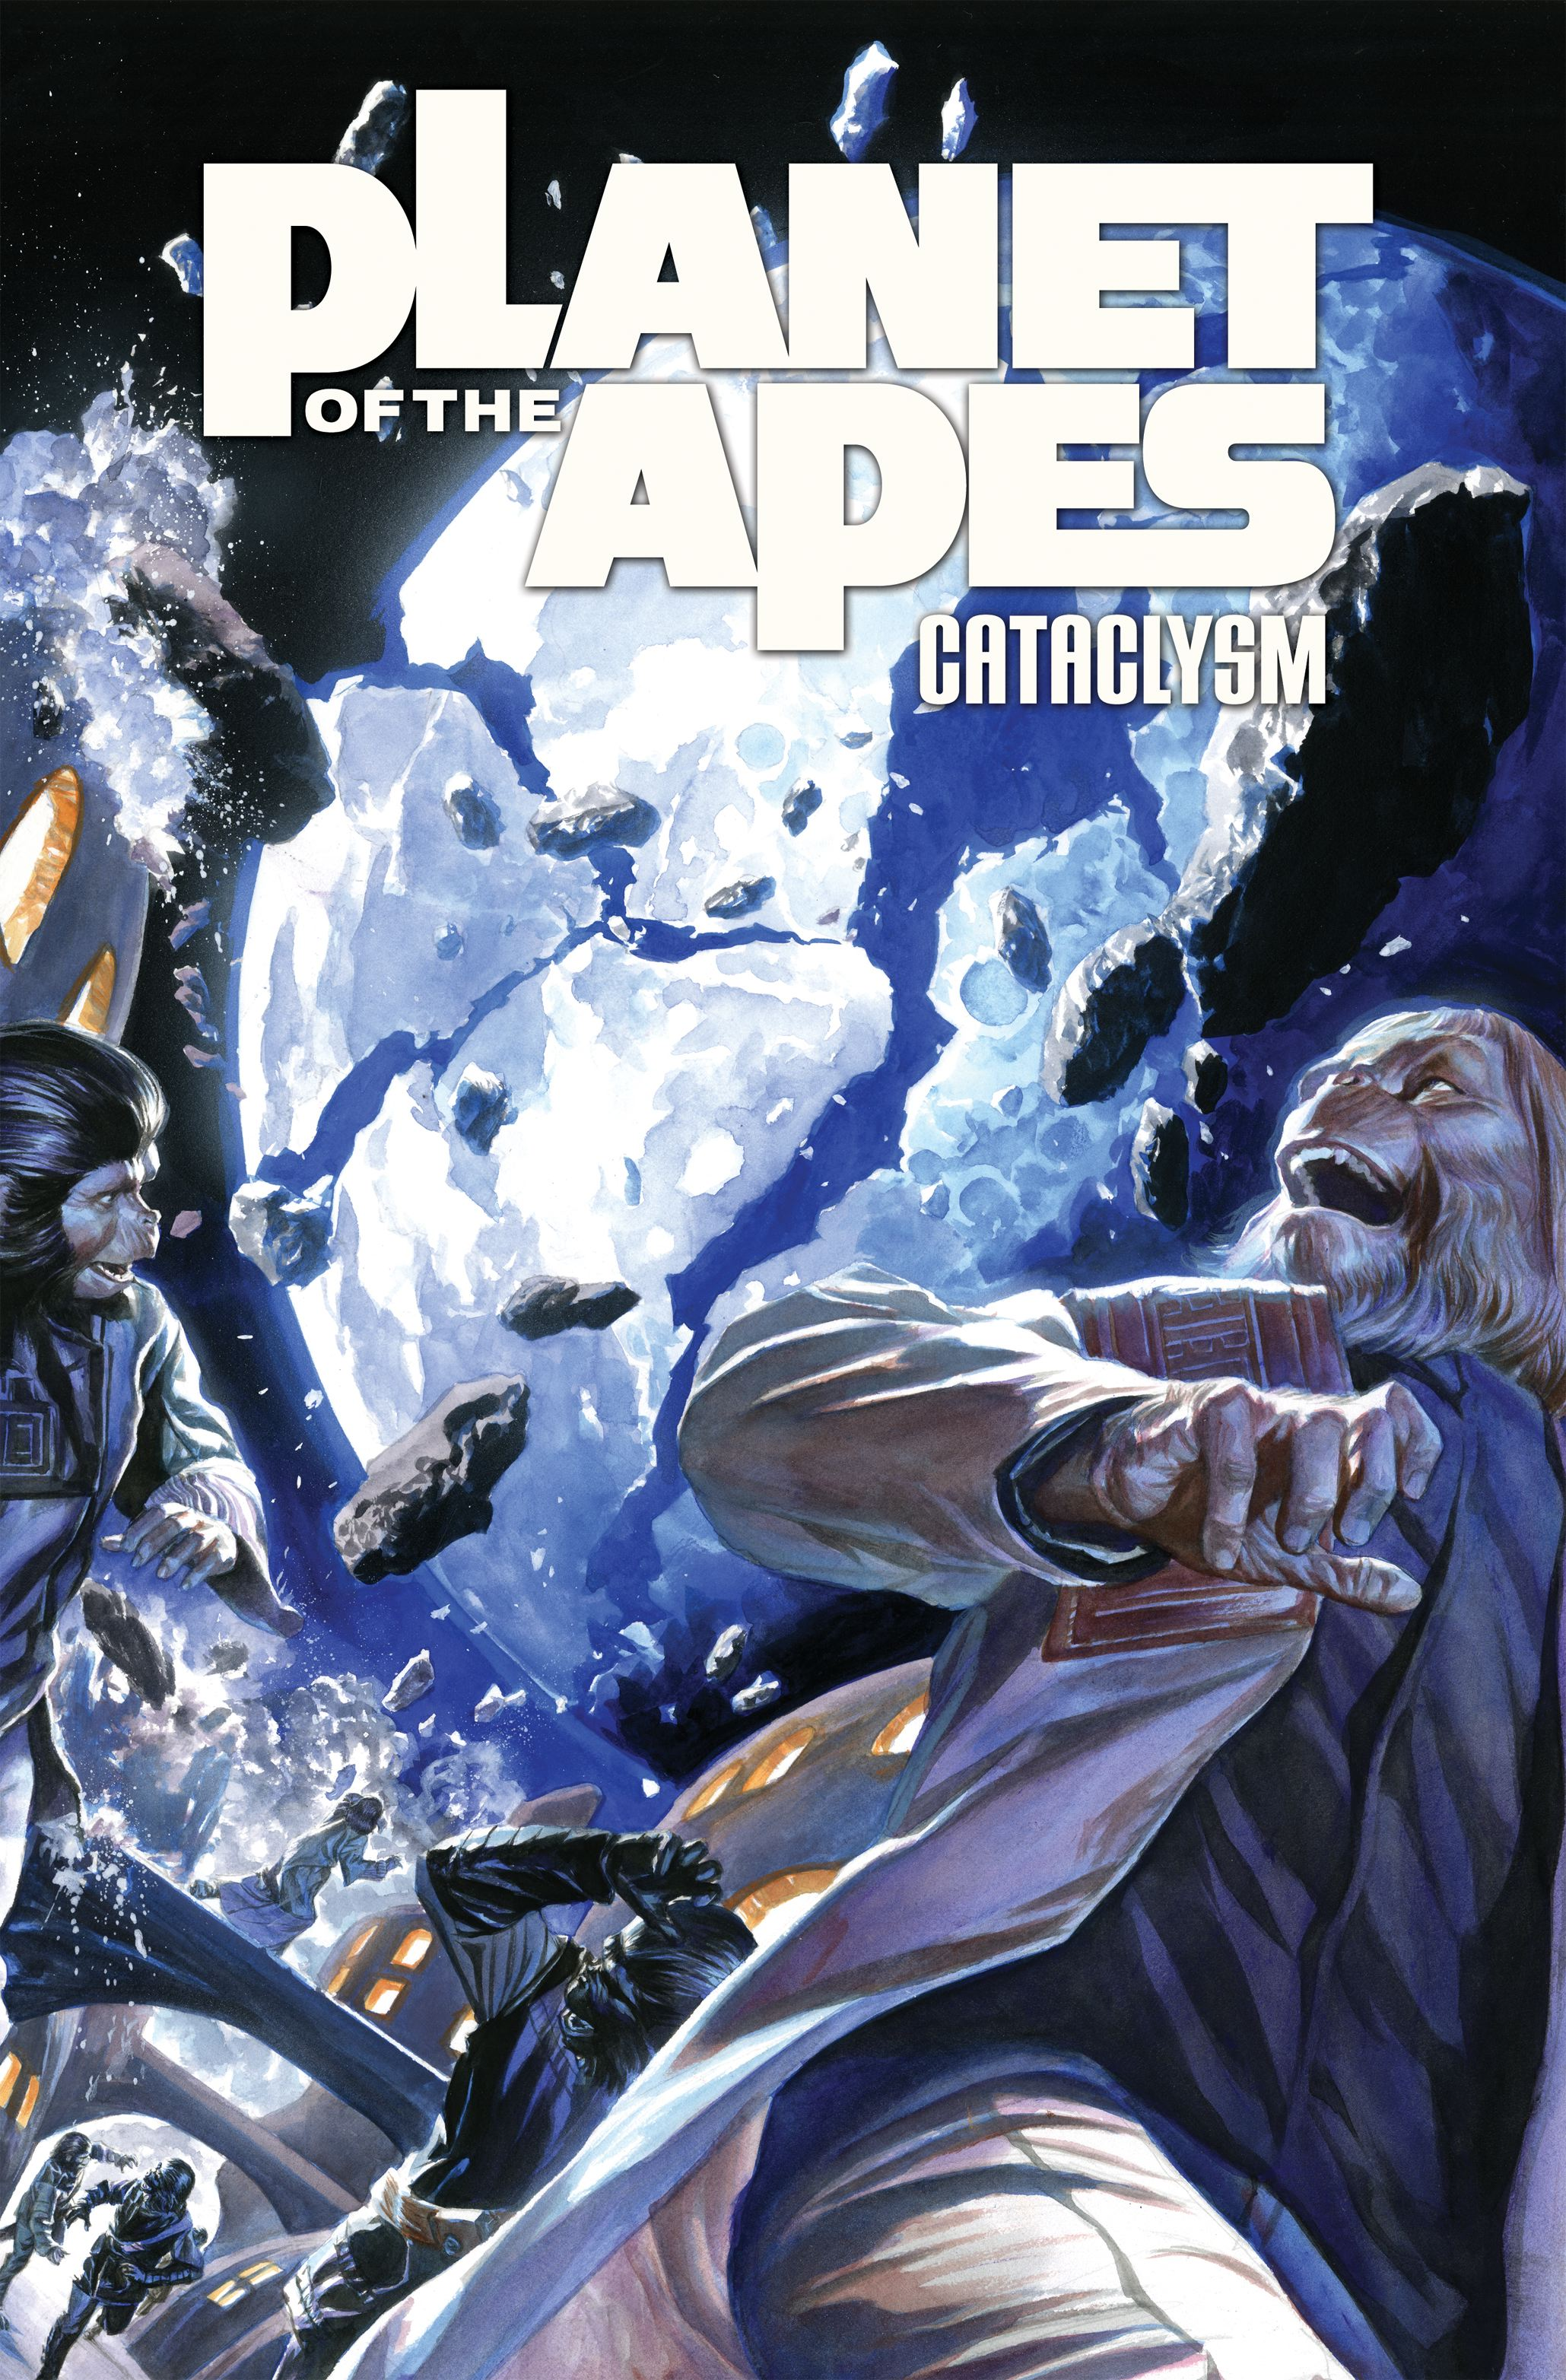 Planet-of-the-apes-cataclysm-vol-2-9781608863419_hr